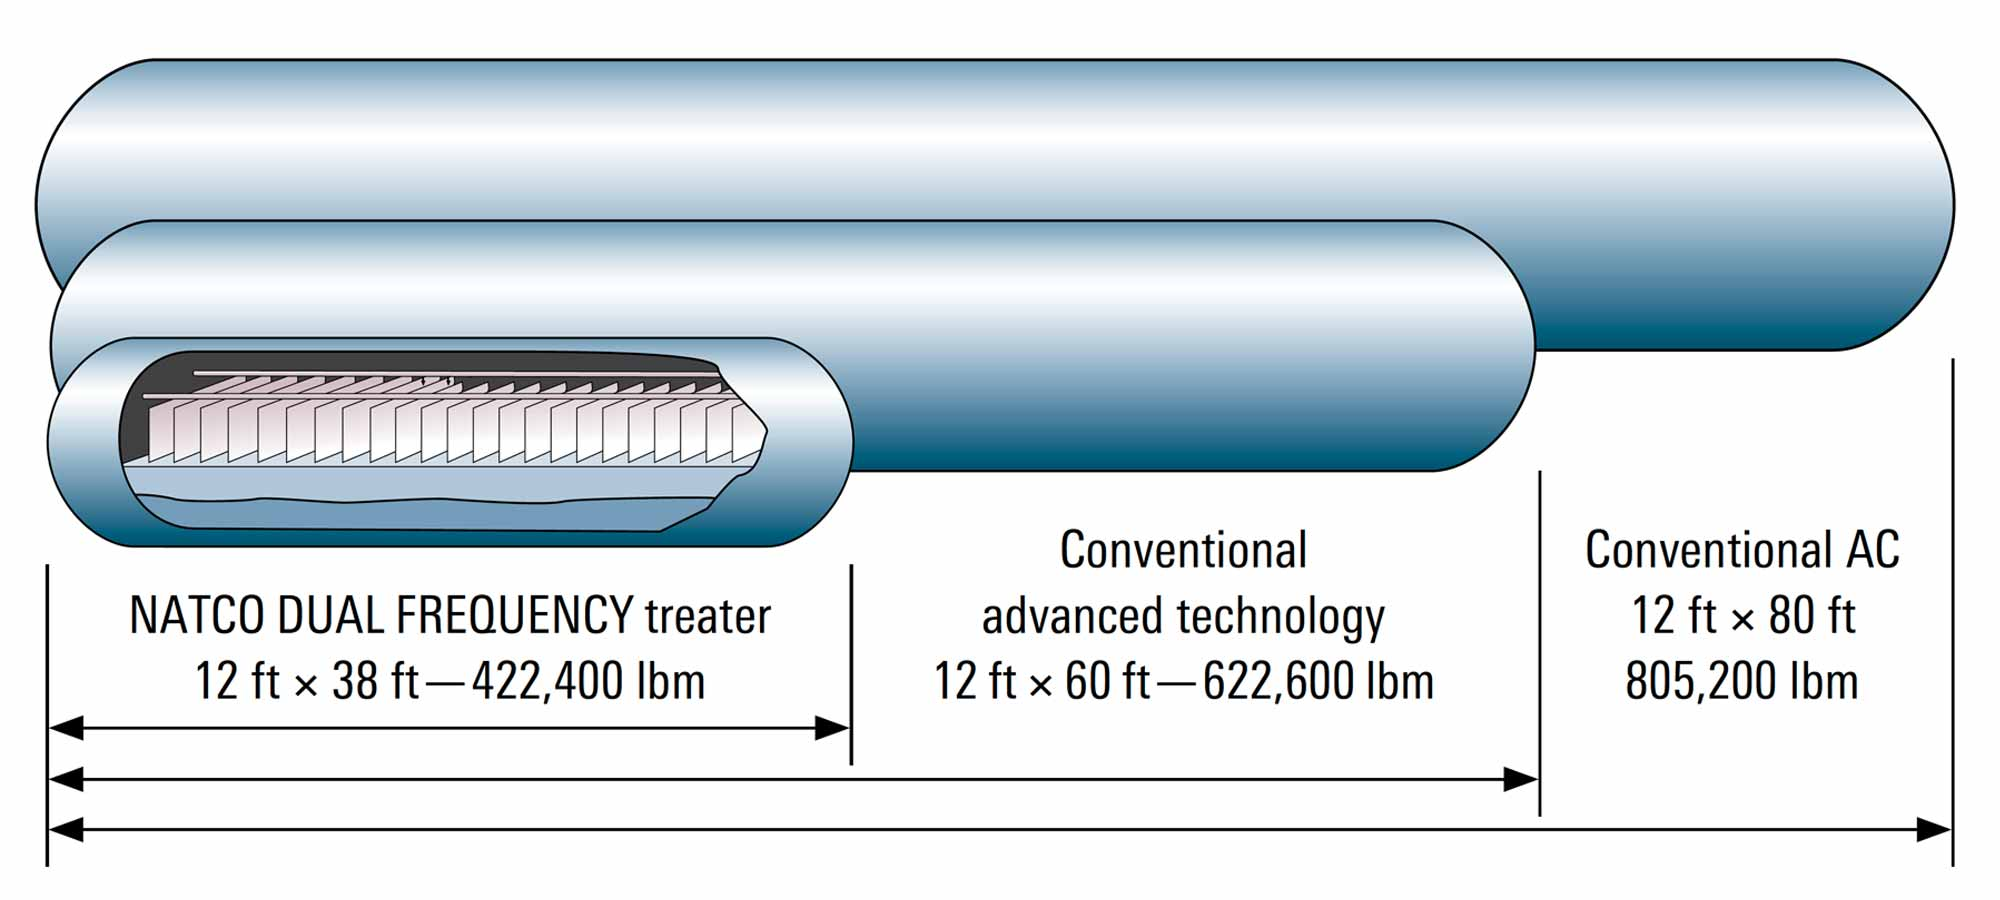 Possible vessel size reduction of NATCO DUAL FREQUENCY treater with high-tech internals